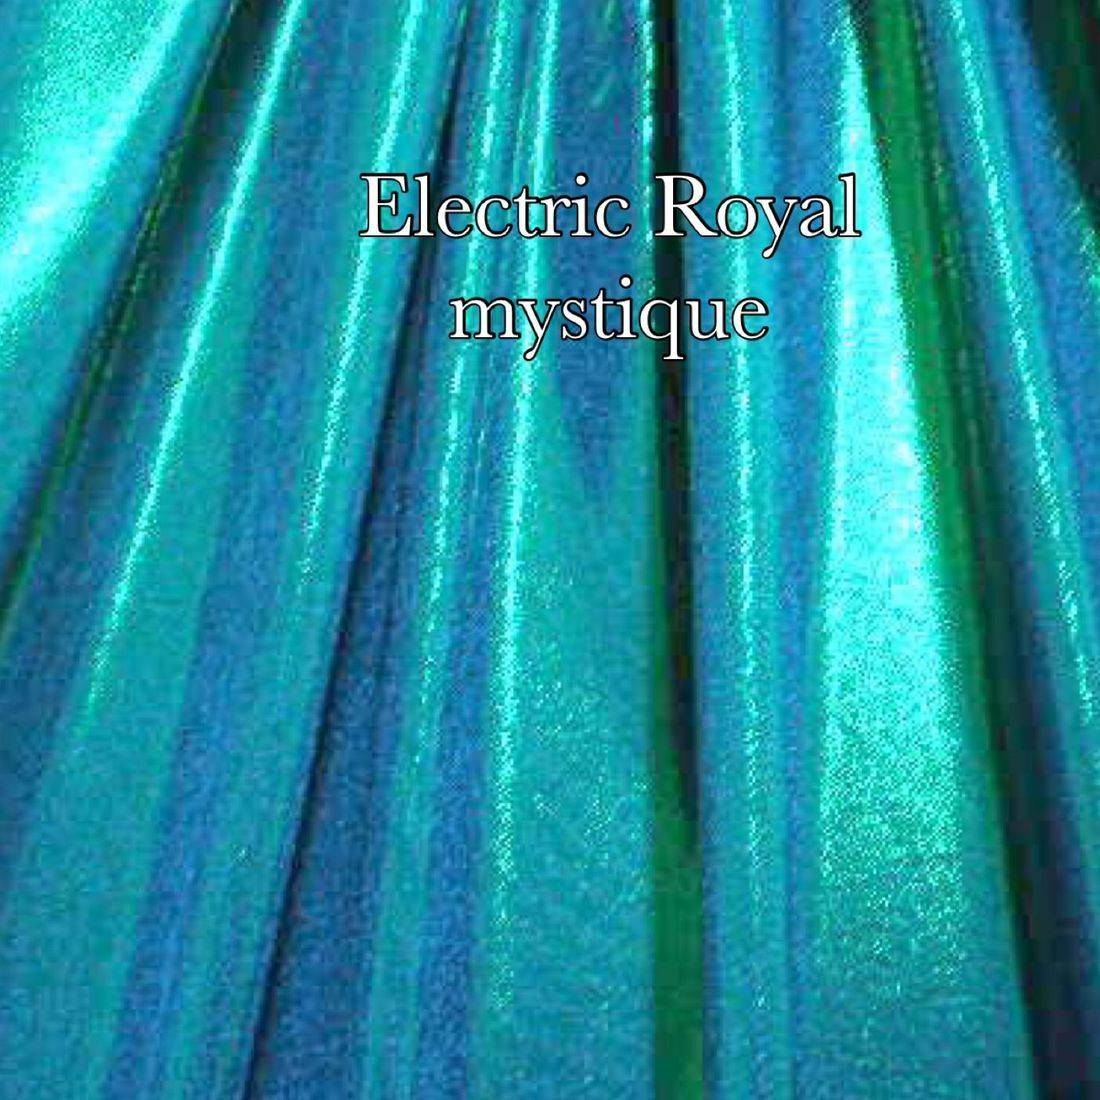 Electric Royal mist